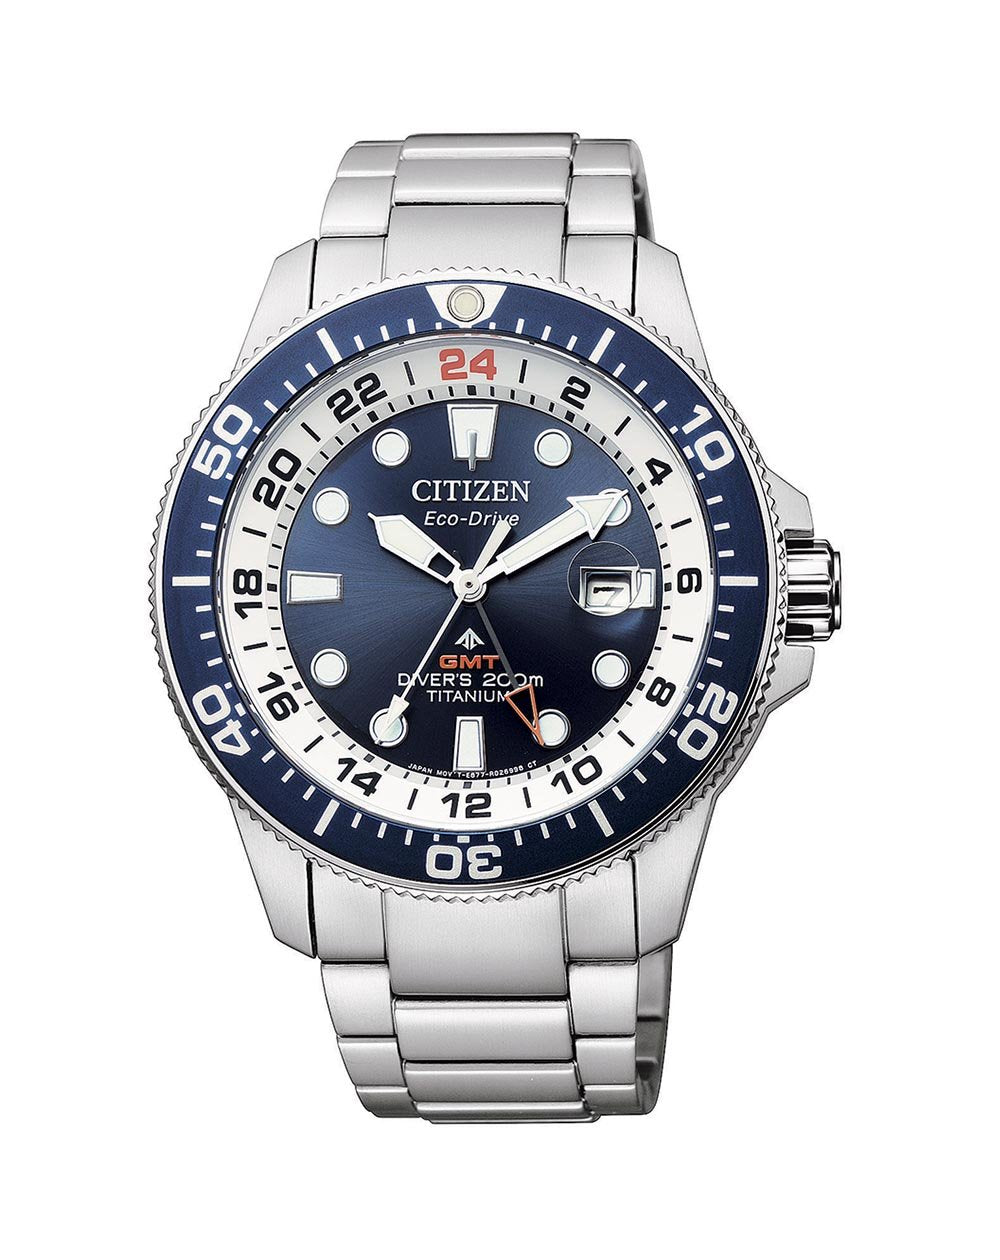 Citizen Eco-Drive Promaster BJ7111-86L